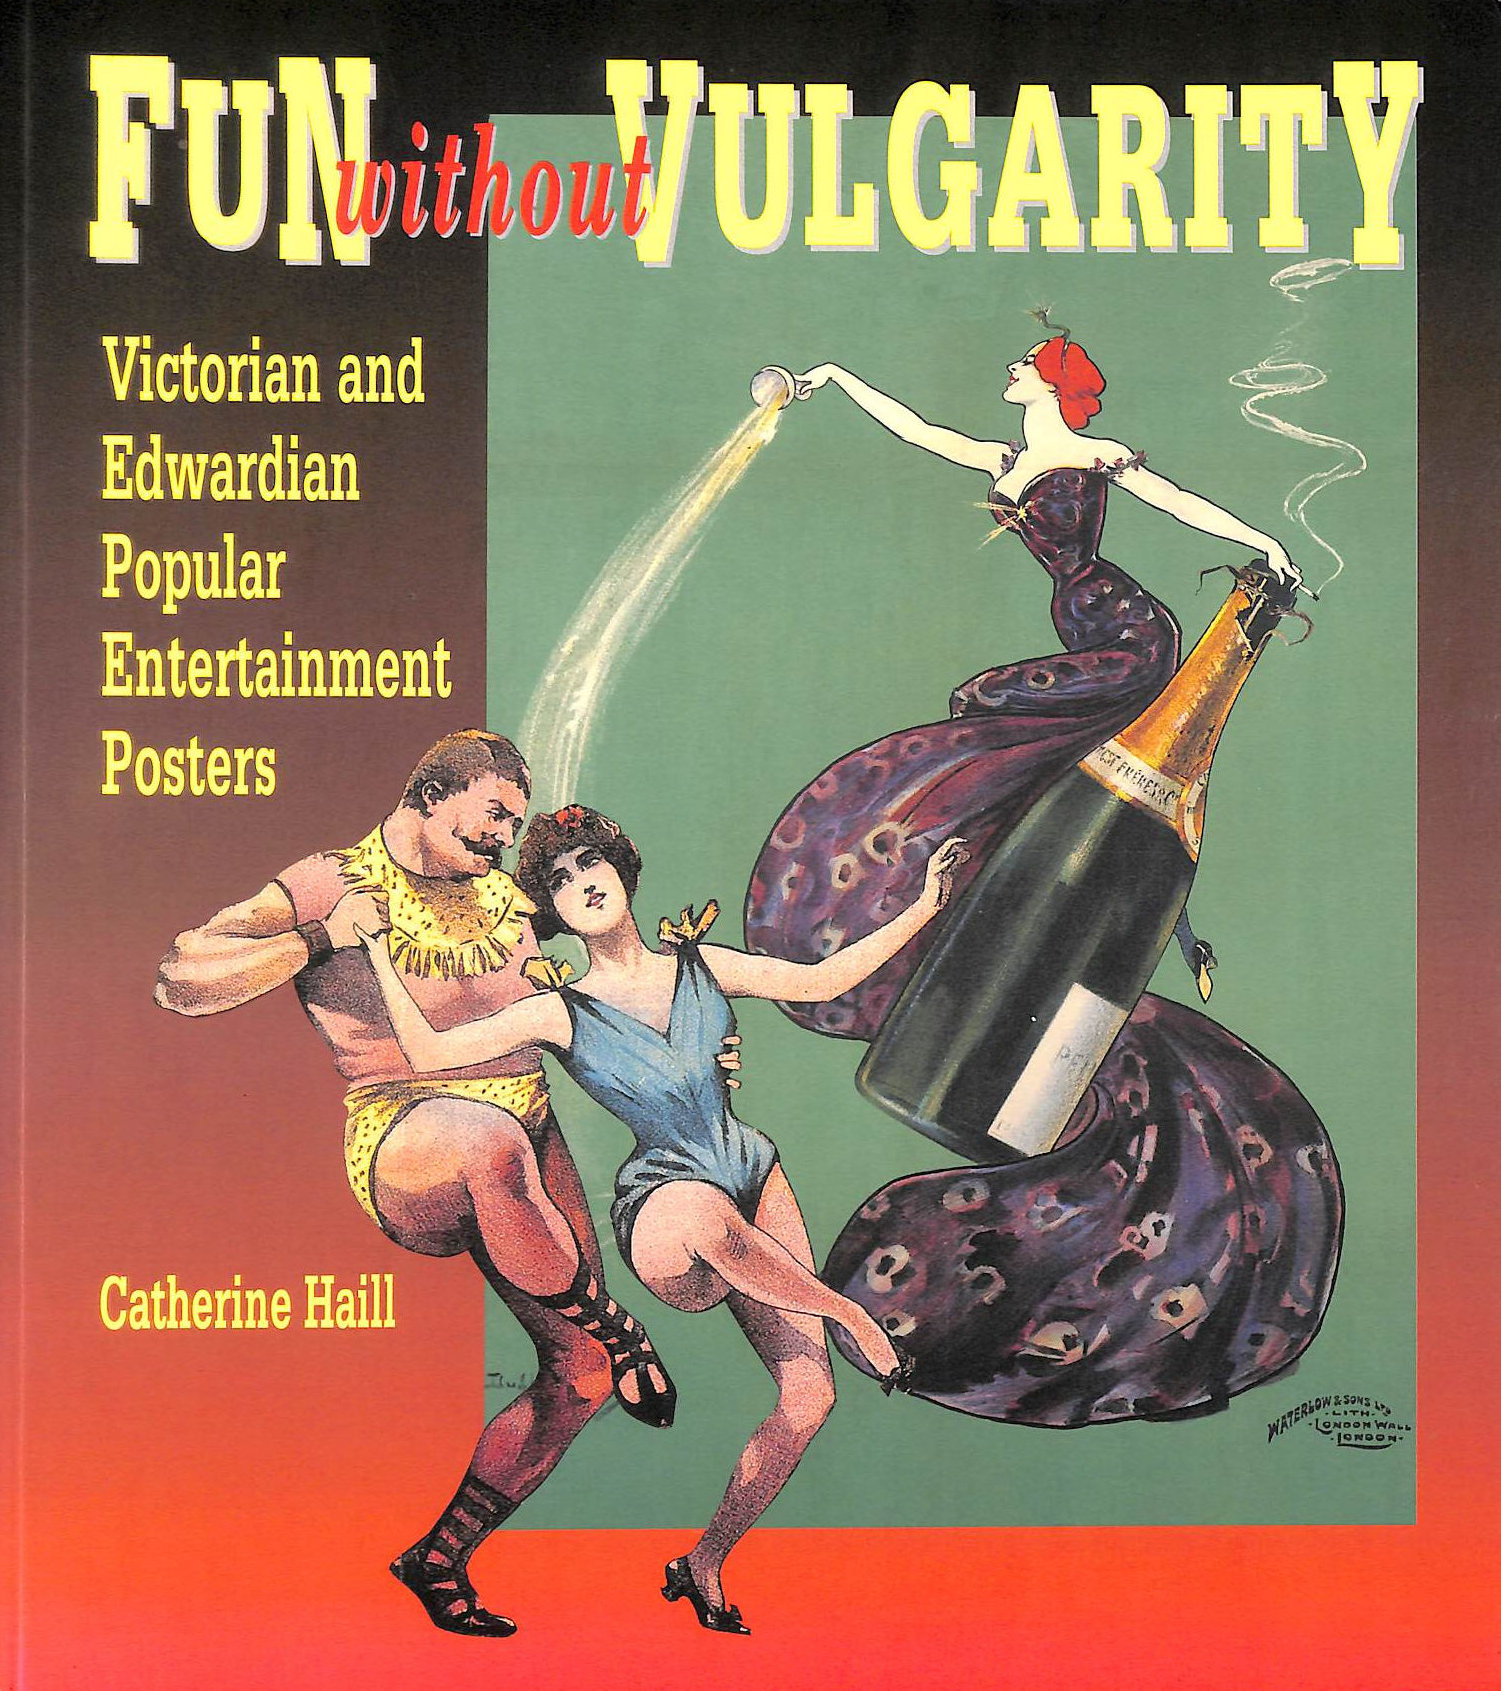 Image for Fun without Vulgarity: Victorian and Edwardian Popular Entertainment Posters